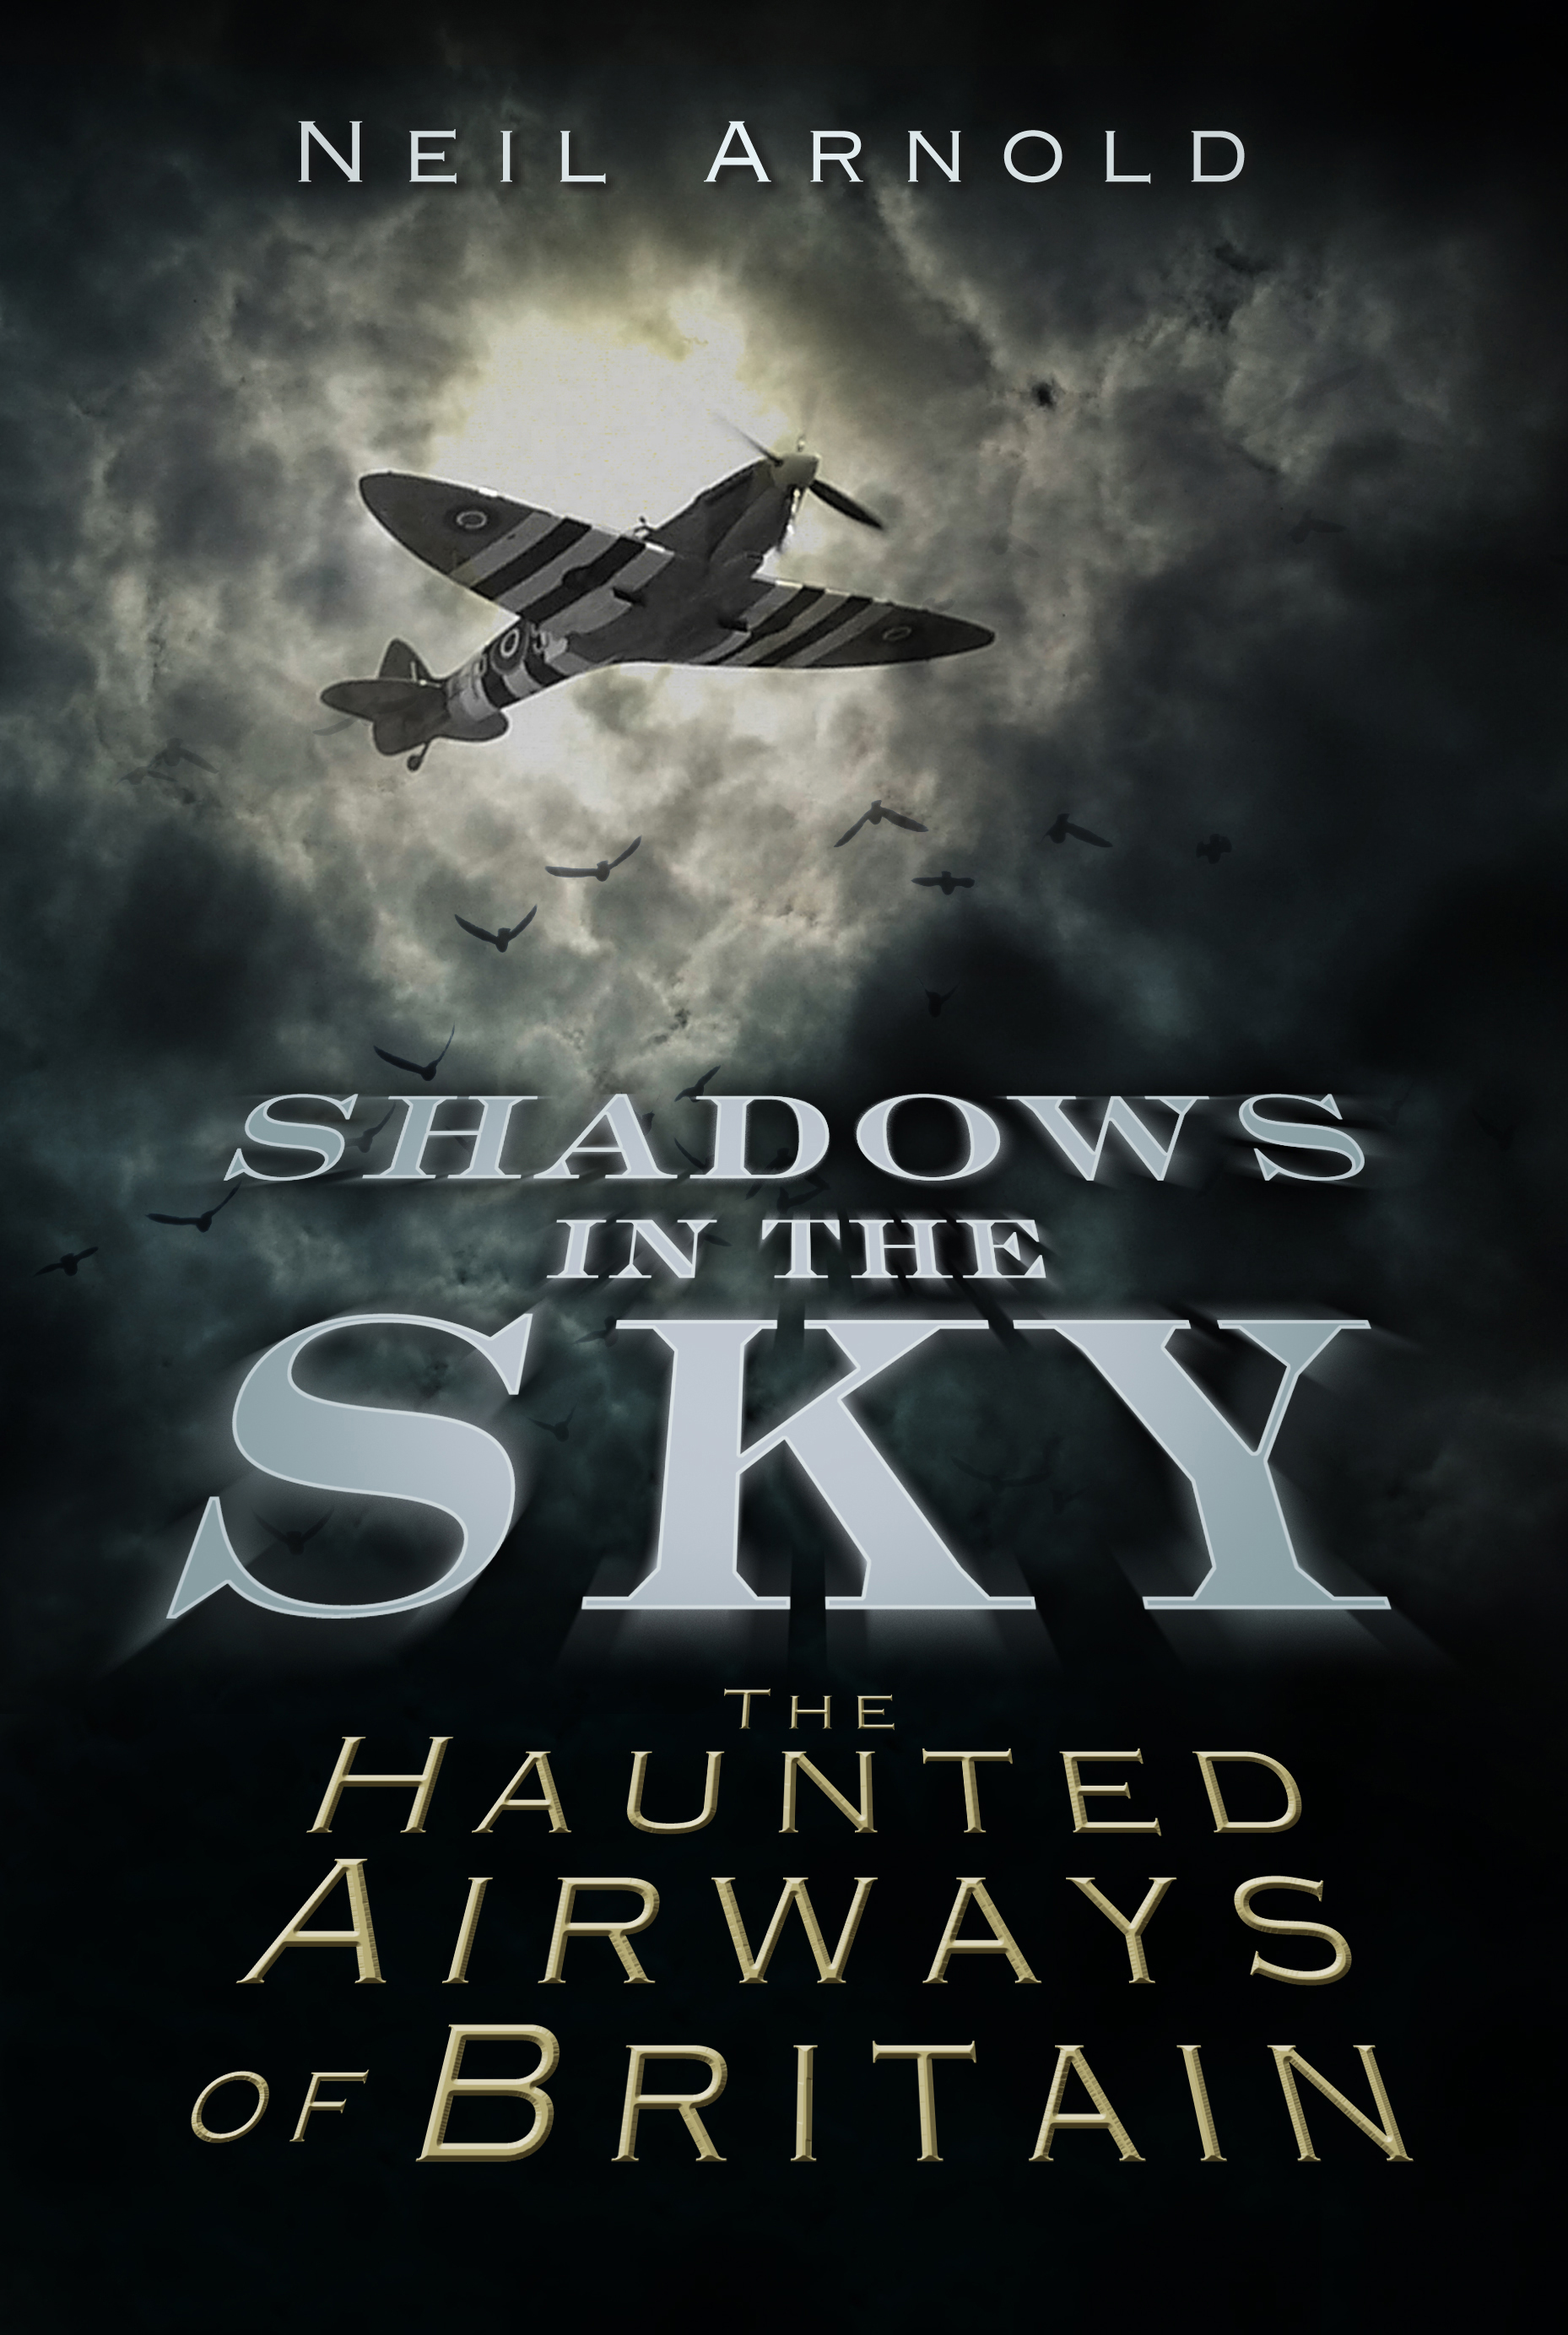 Shadows in the Sky The Haunted Airways of Britain